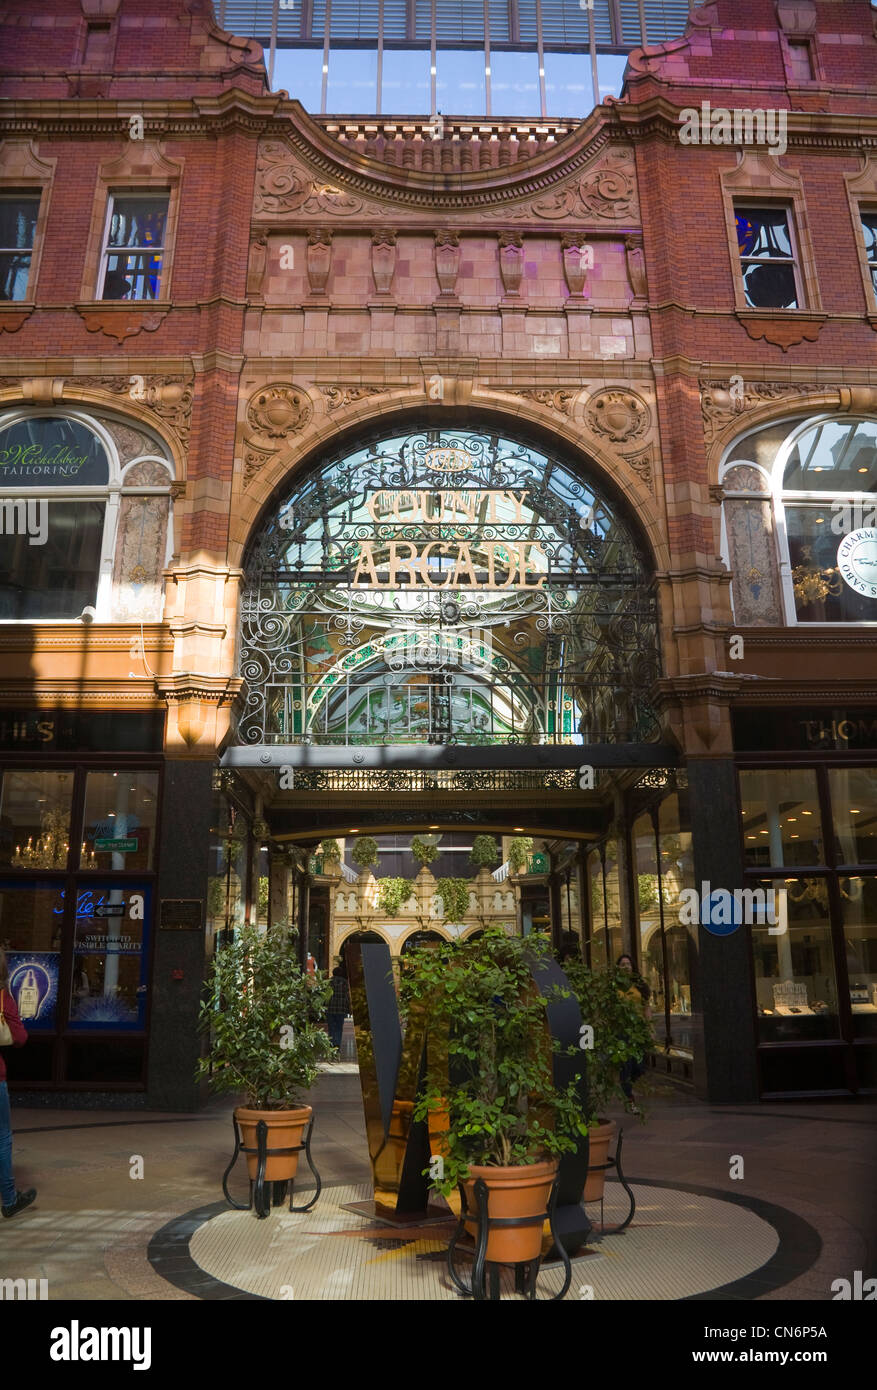 Leeds West Yorkshire England Reiss Department store in Victorian design County Arcade - Stock Image